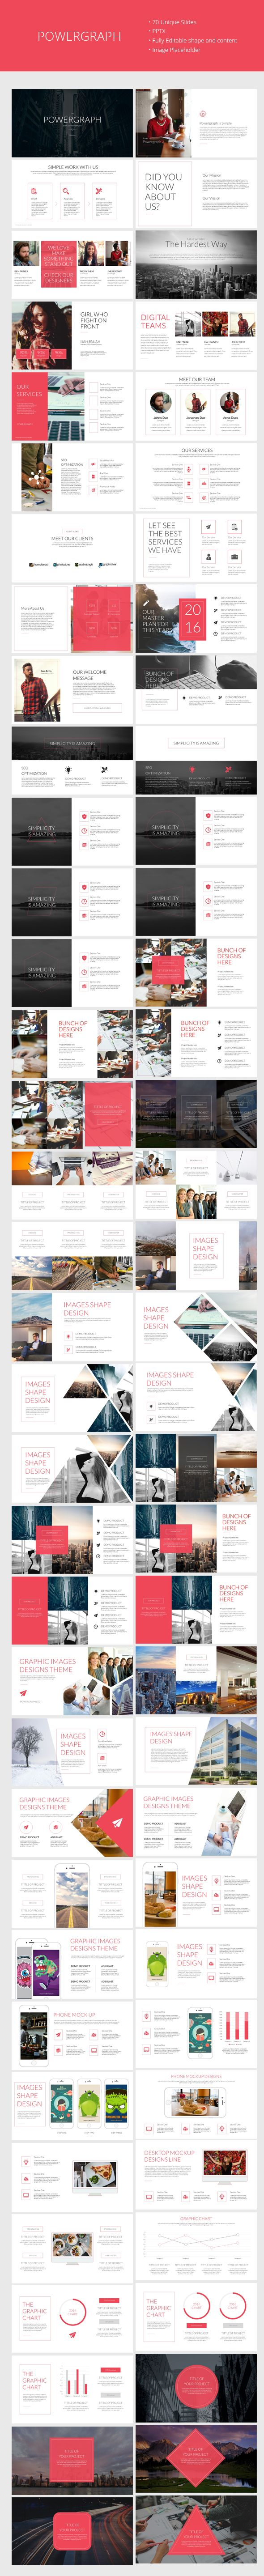 Powergraph Clean Powerpoint Template. Download here: http://graphicriver.net/item/powergraph-clean-powerpoint-template/16043809?ref=ksioks